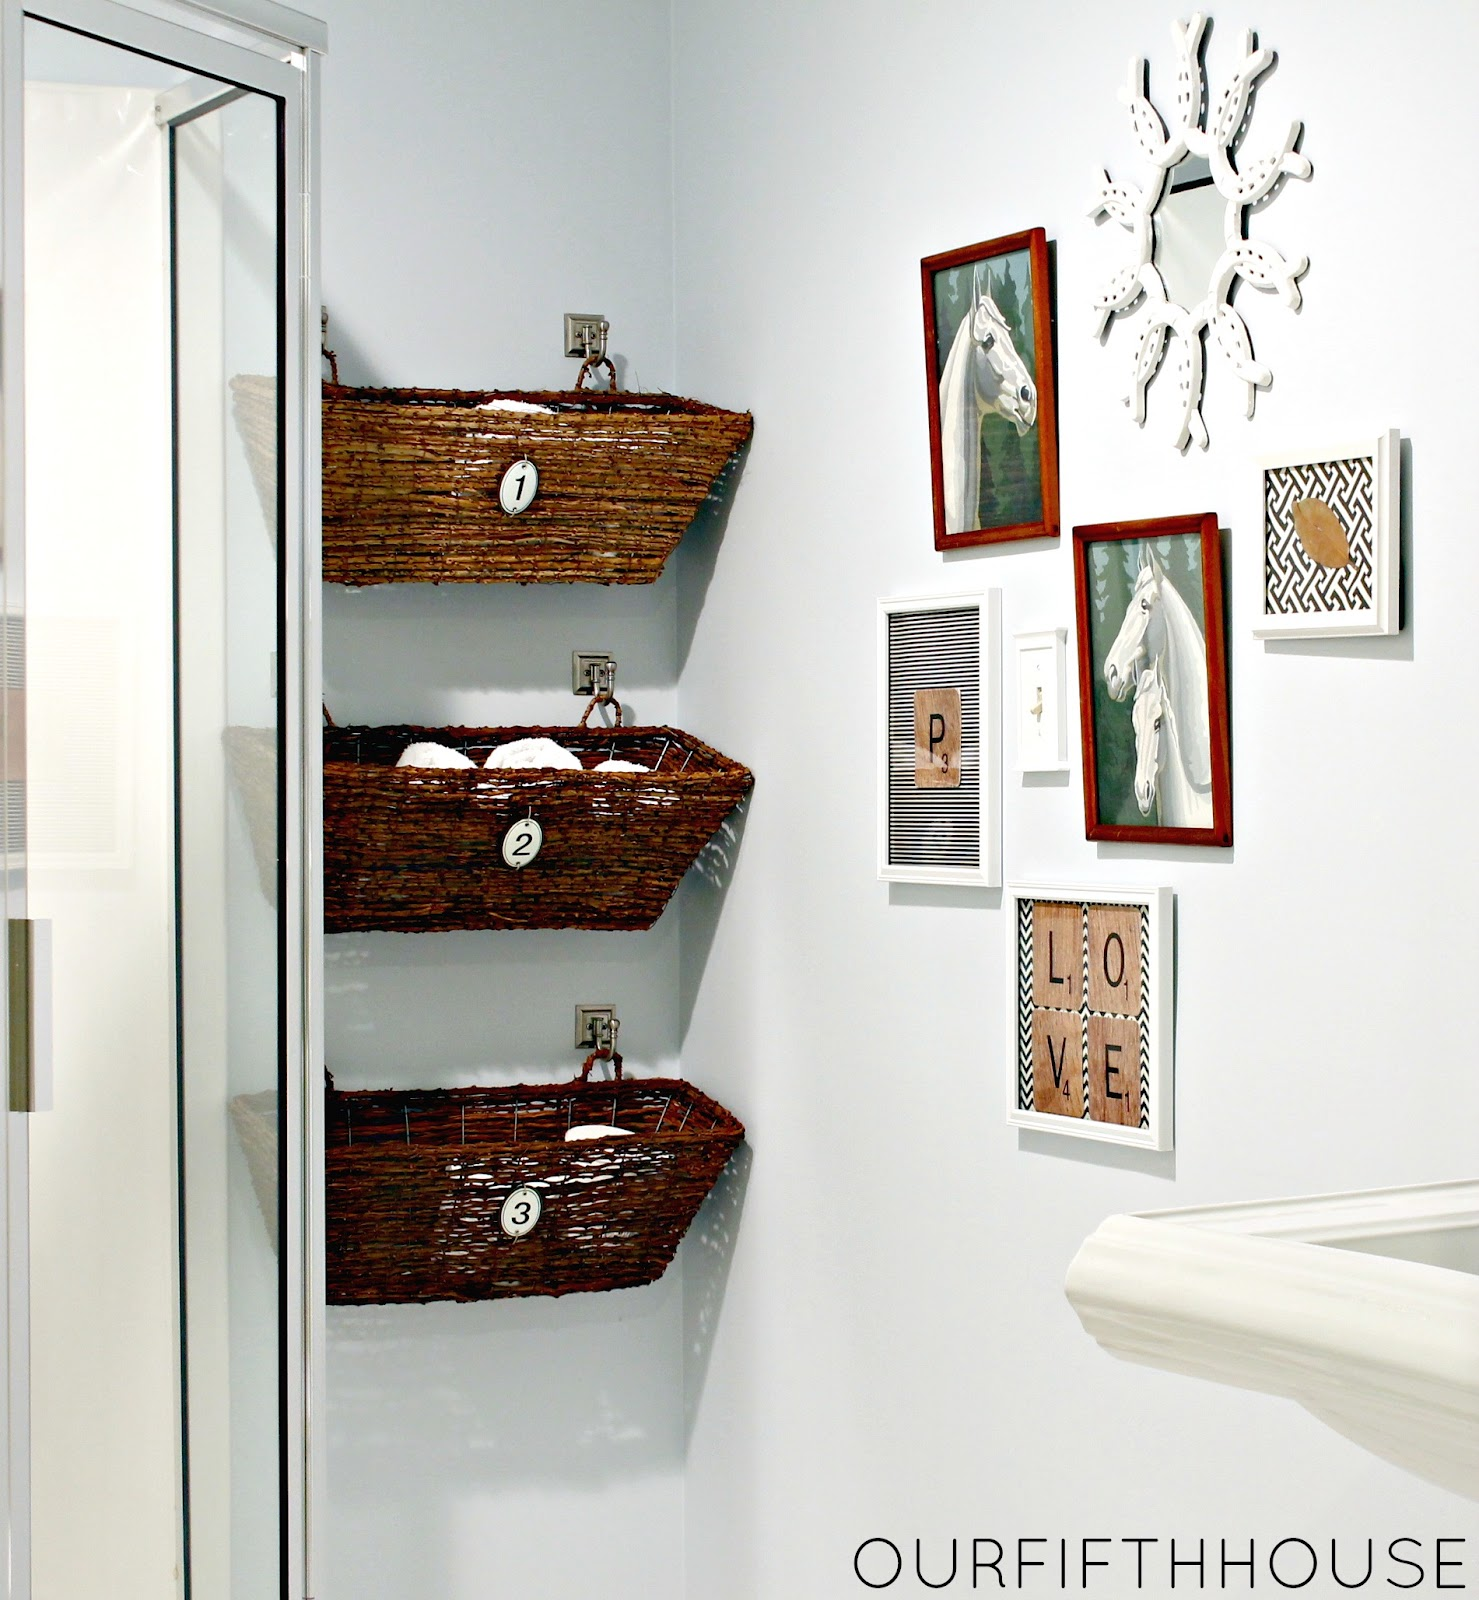 Wall Organizers For Home 12 small bathroom storage ideas - wall storage solutons and